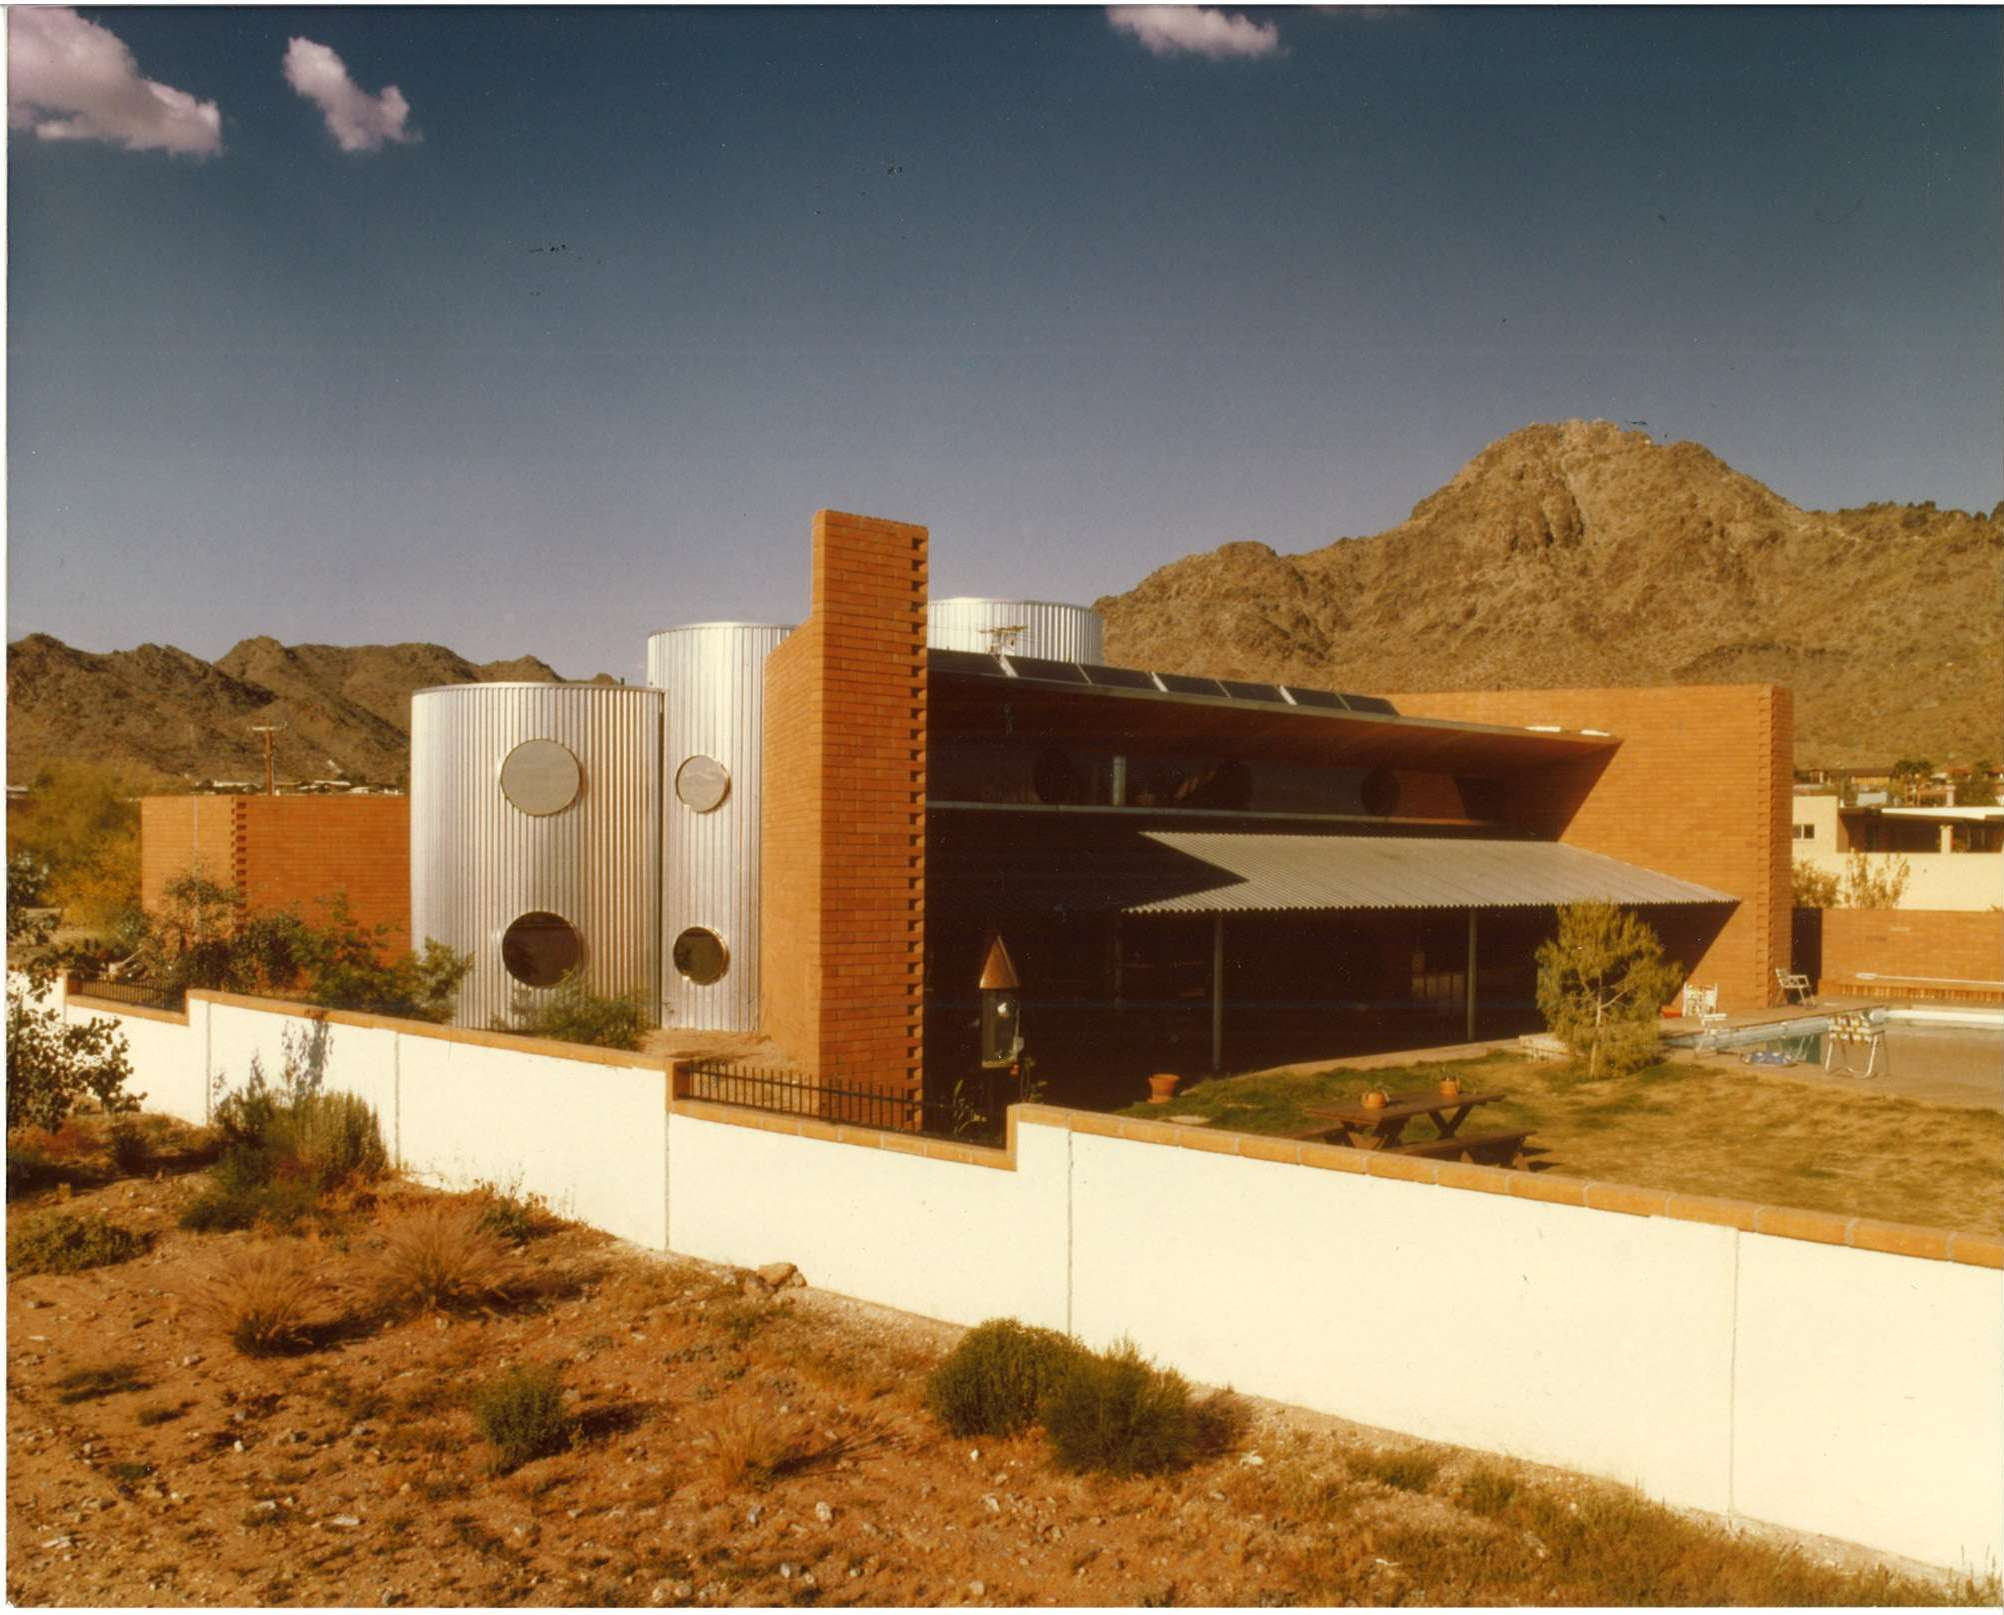 William P Bruder Arizona Architecture From The Archives Libguides At Arizona State University